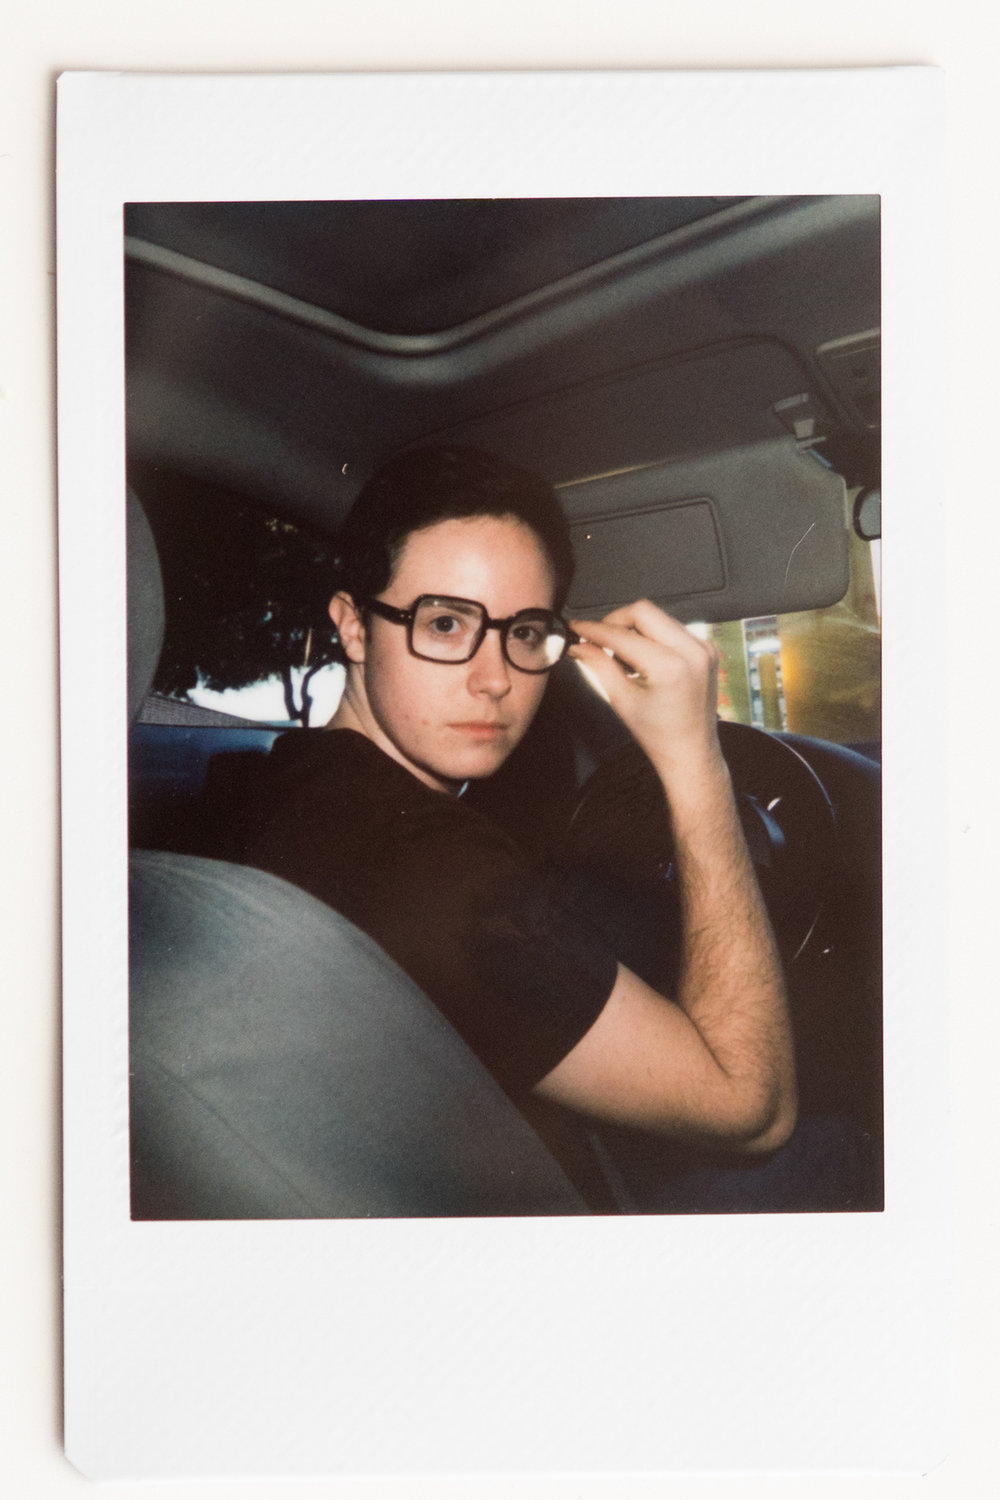 personal-instax-friends-1.jpg